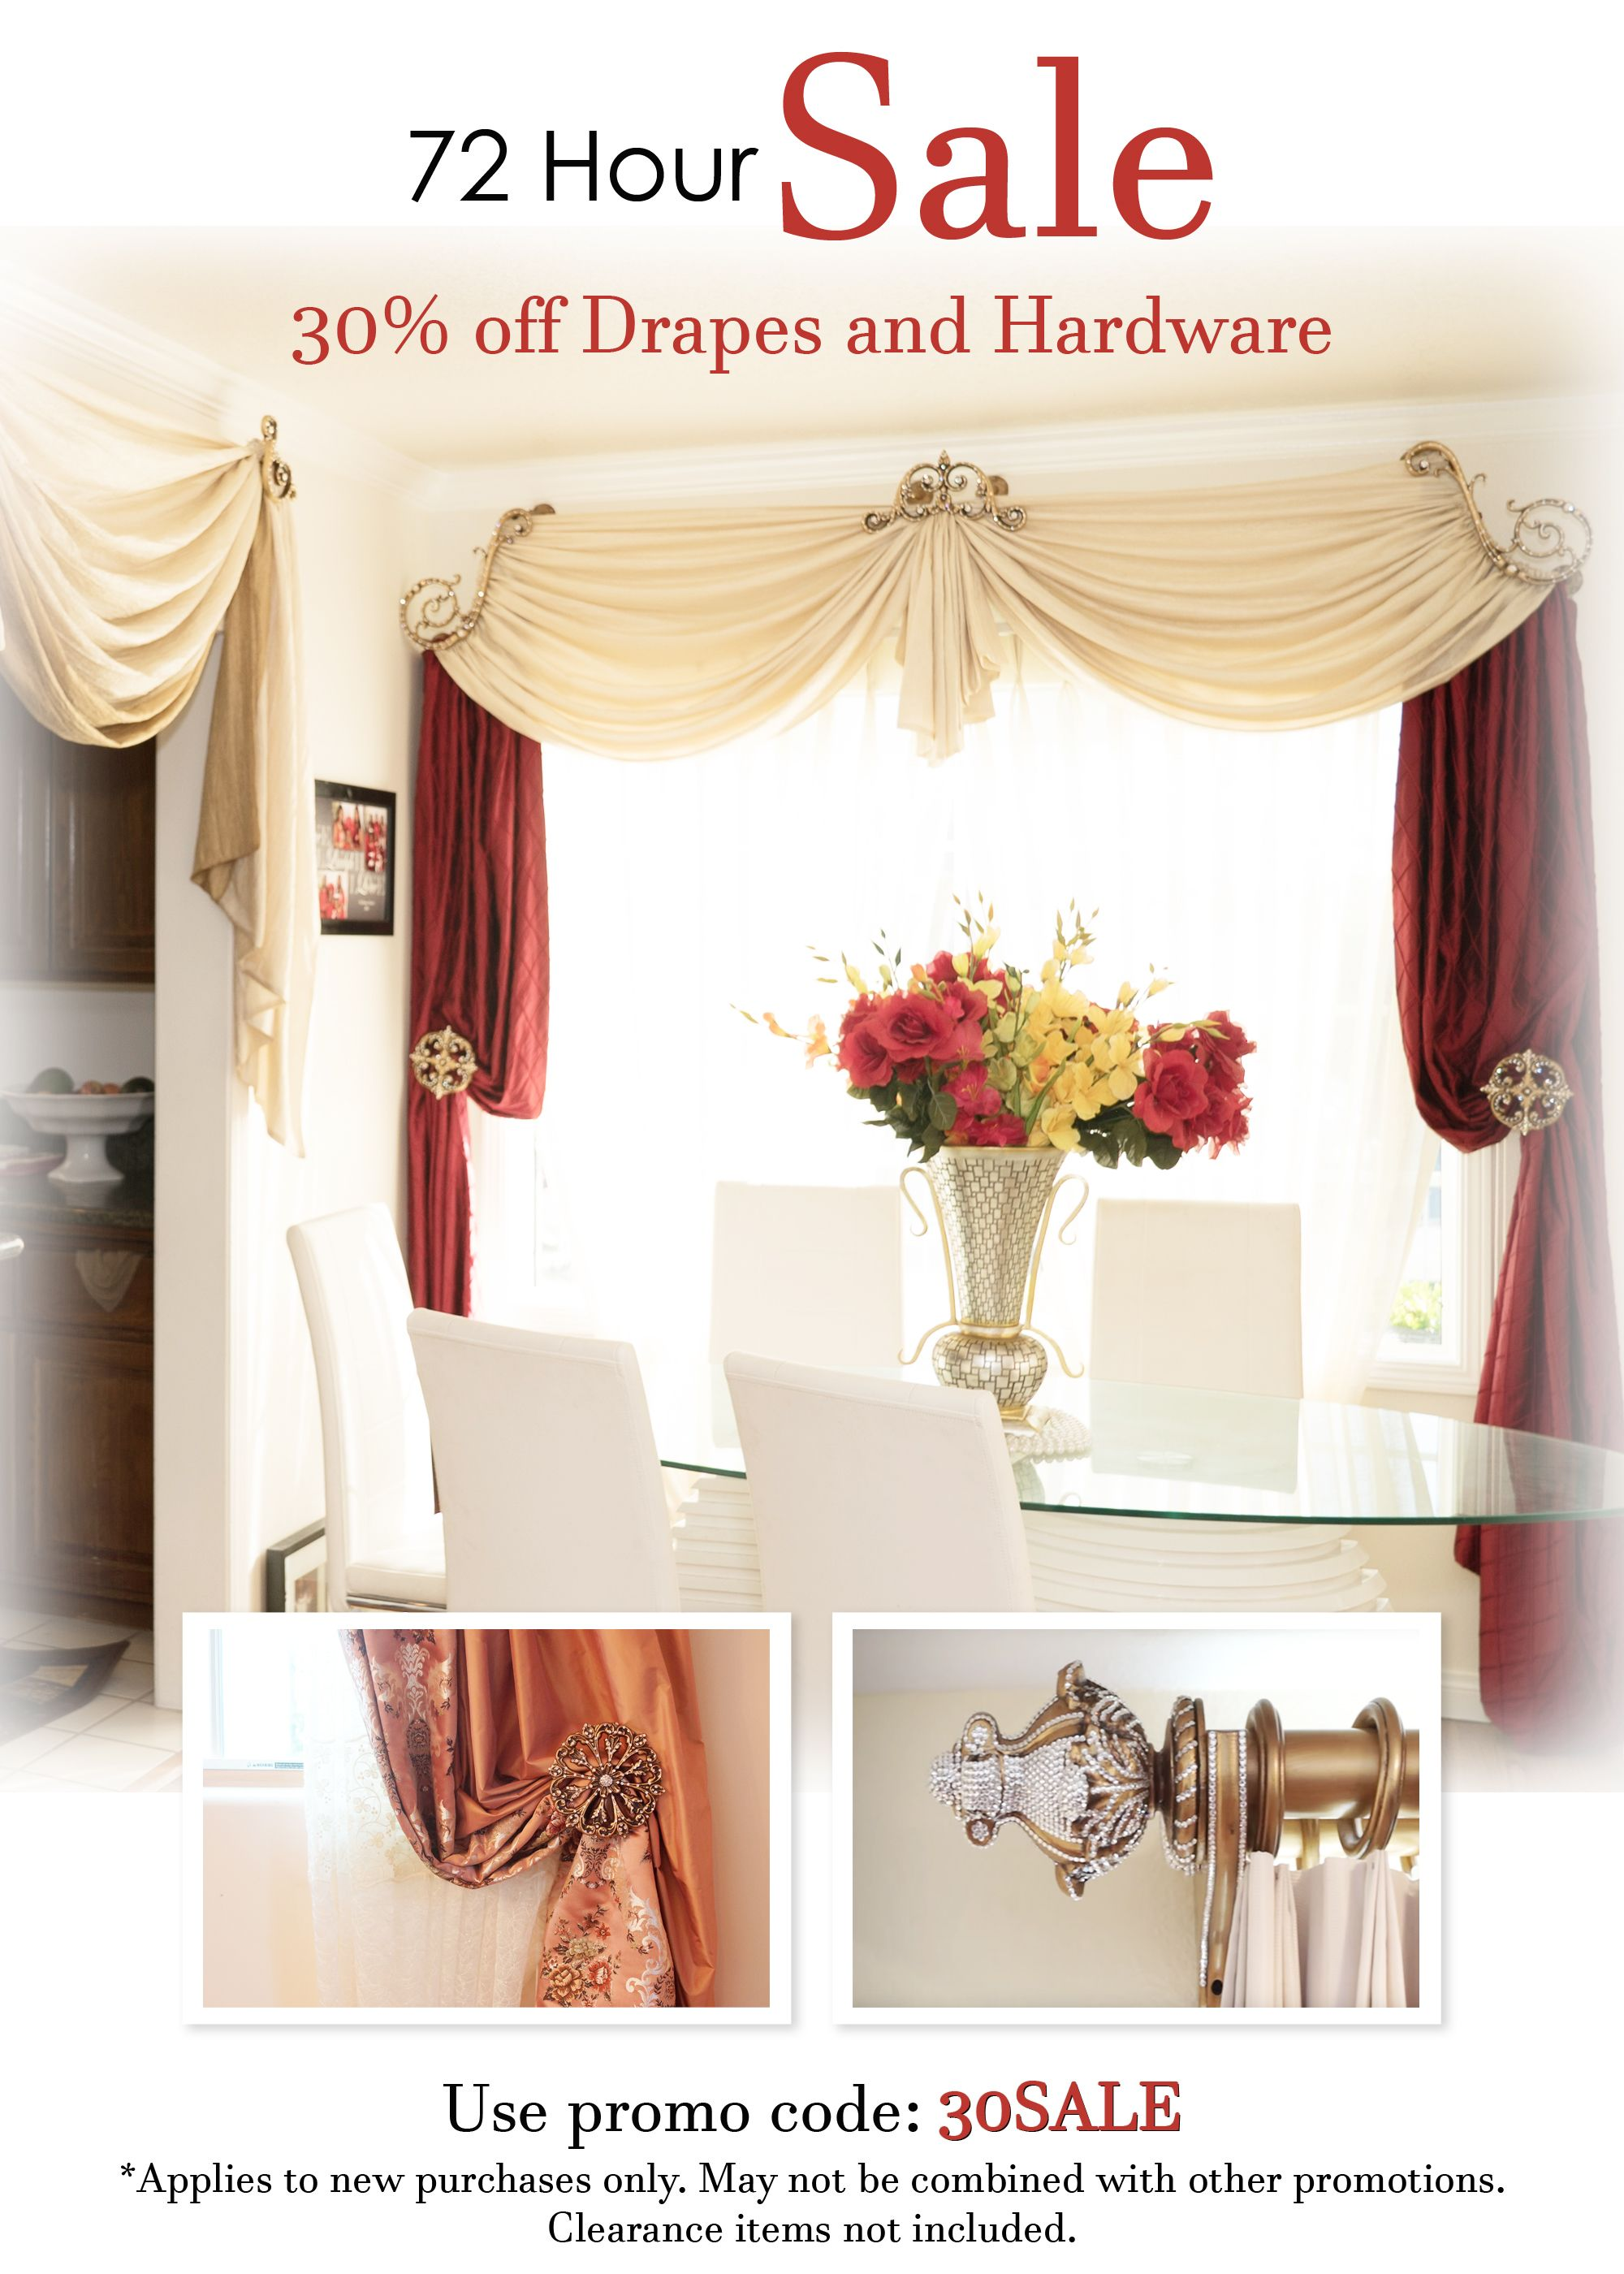 30 Off 72 Hour Sale Starting 11 10 Thru 11 12 Curious To See What Your Room Will Look Like When The W Family Room Windows Custom Drapery Family Living Rooms